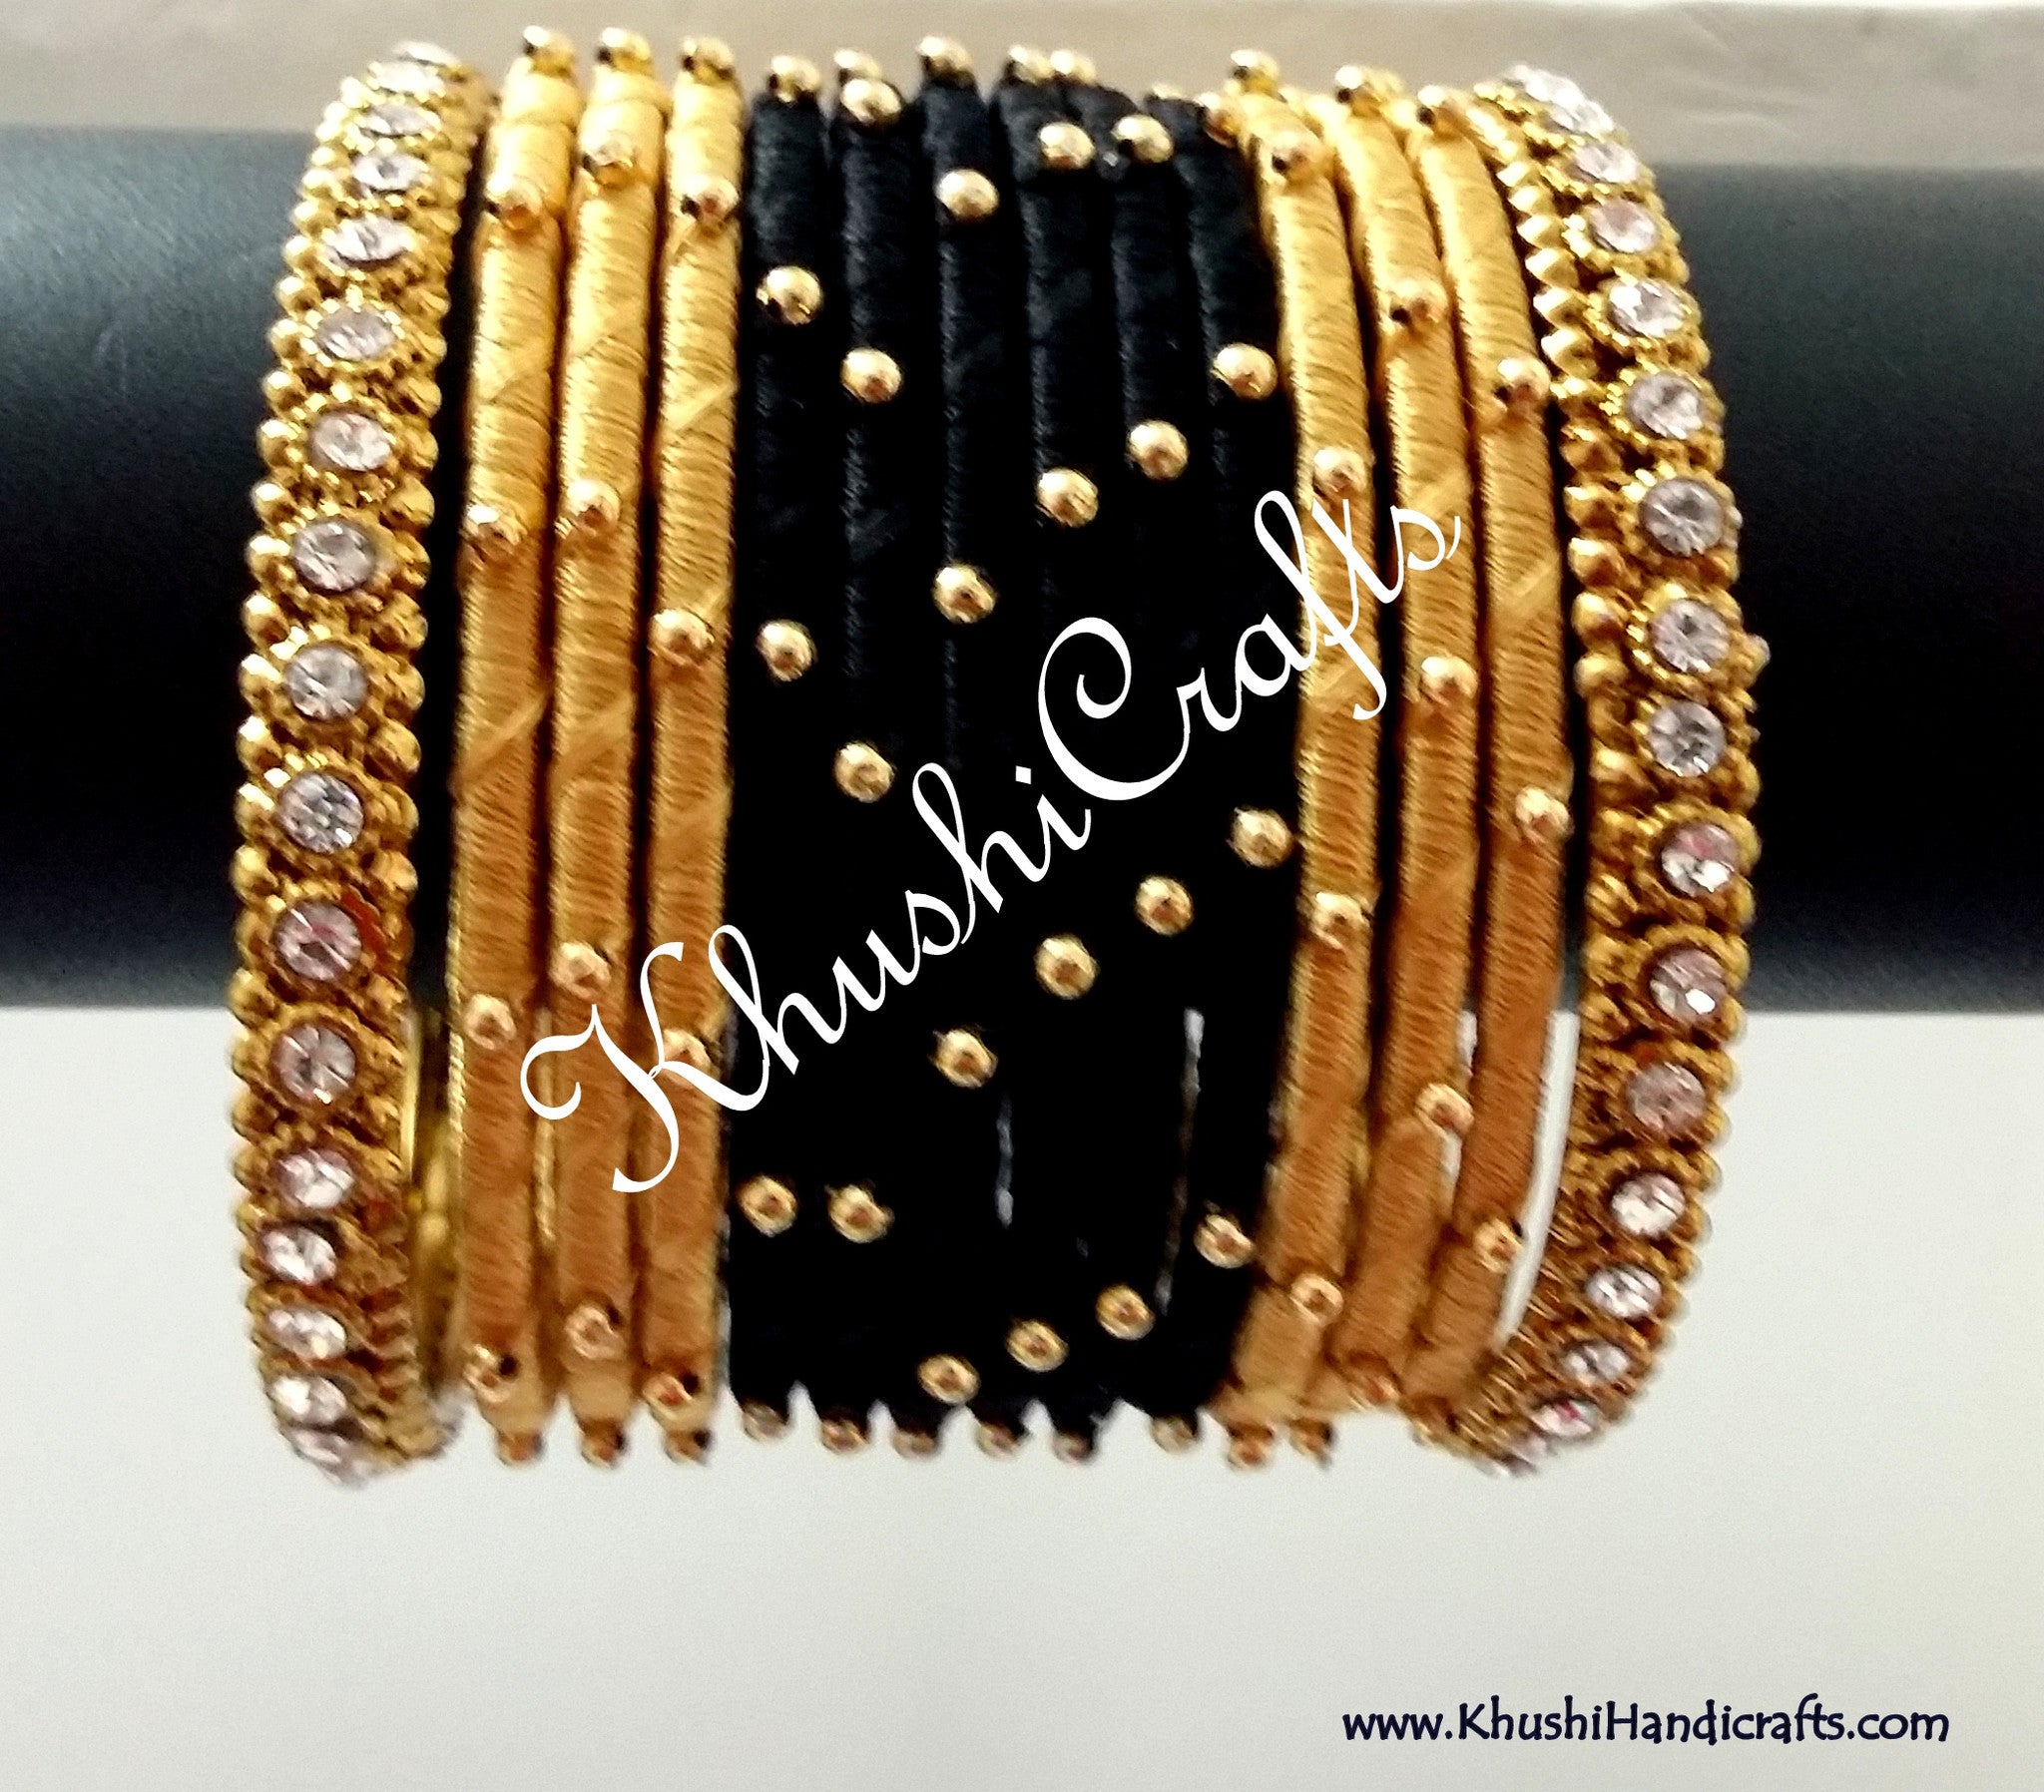 Hand-crafted exquisite Silk Bangles in Black and Gold - Khushi Handmade Jewellery